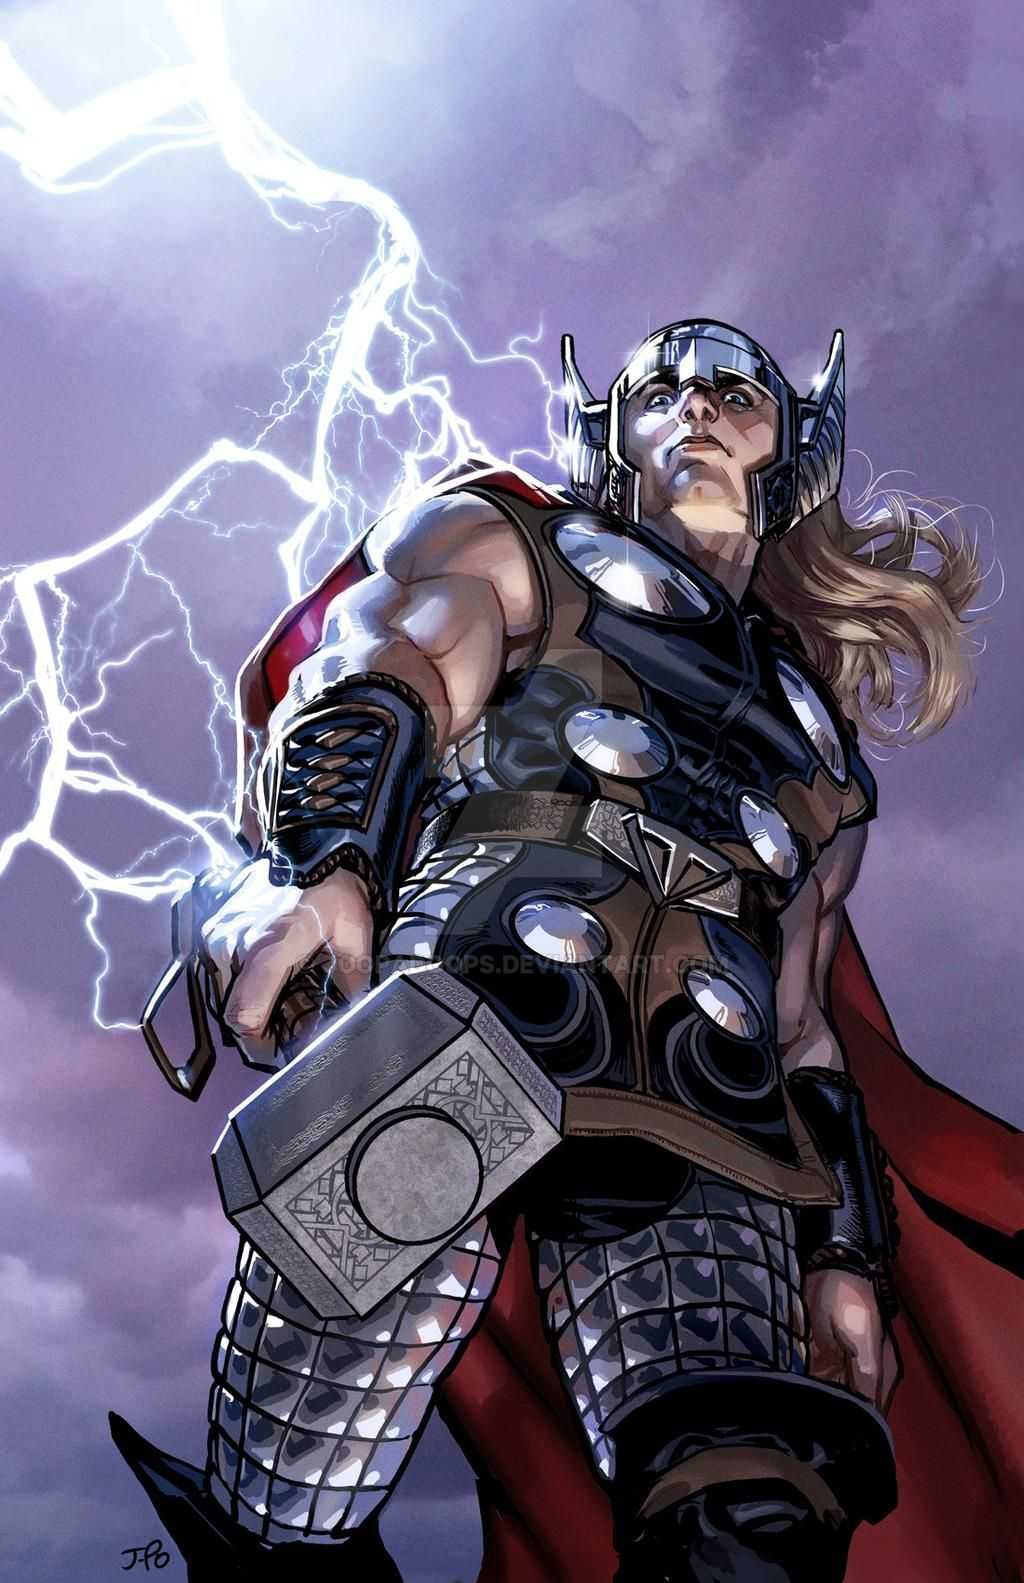 Thor Suggests That You Stay Down by JoopaDoops on DeviantArt